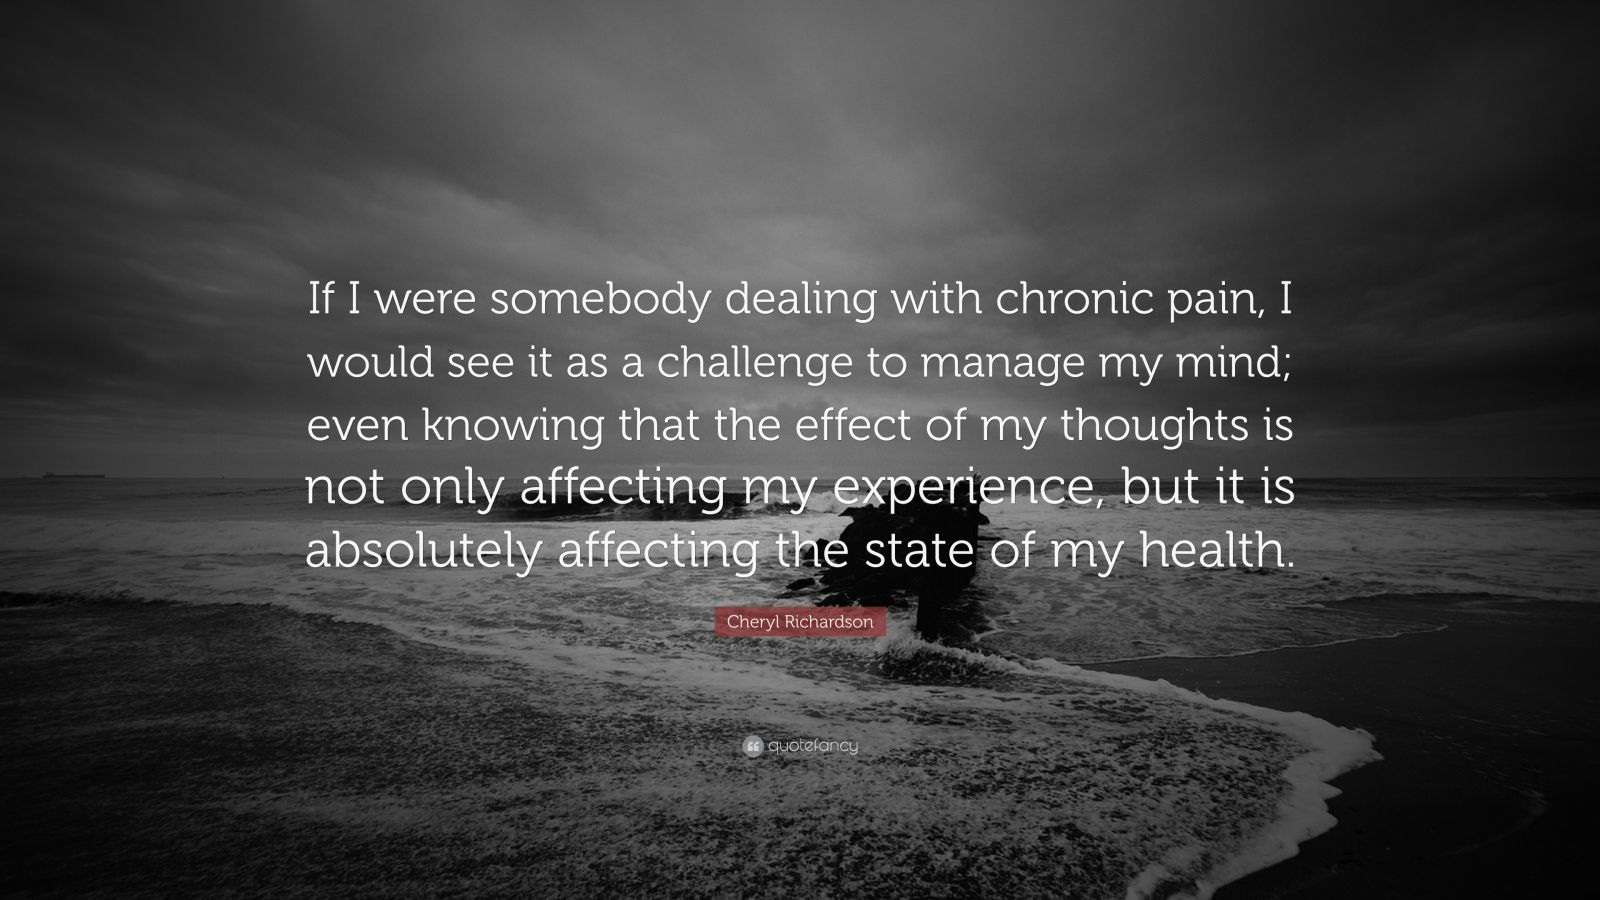 Chronic Pain Quotes Cheryl Richardson Quotes 81 Wallpapers  Quotefancy